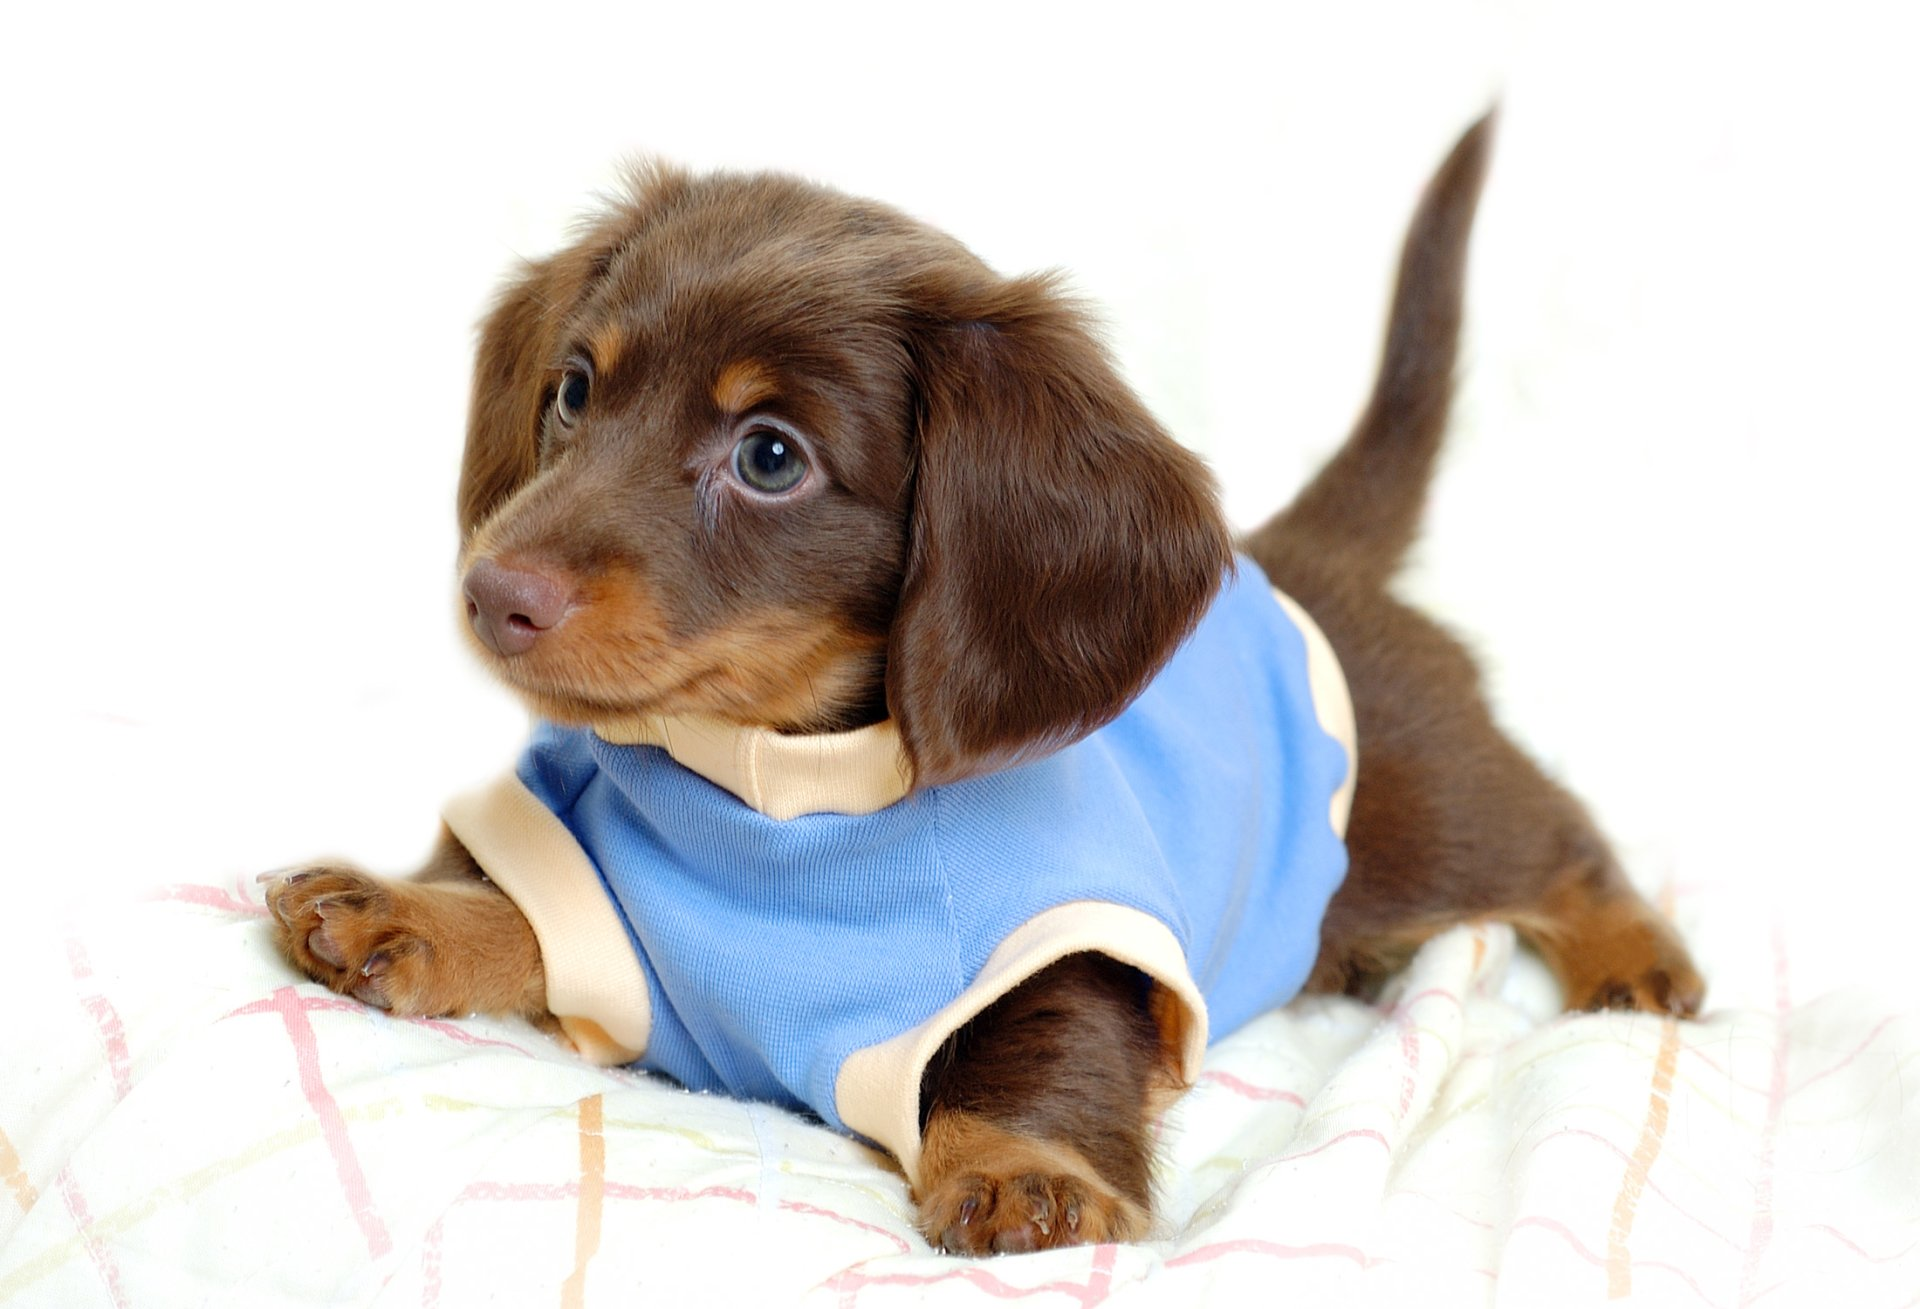 Animal - Dog  Dachshund Puppy Cute Baby Animal Wallpaper